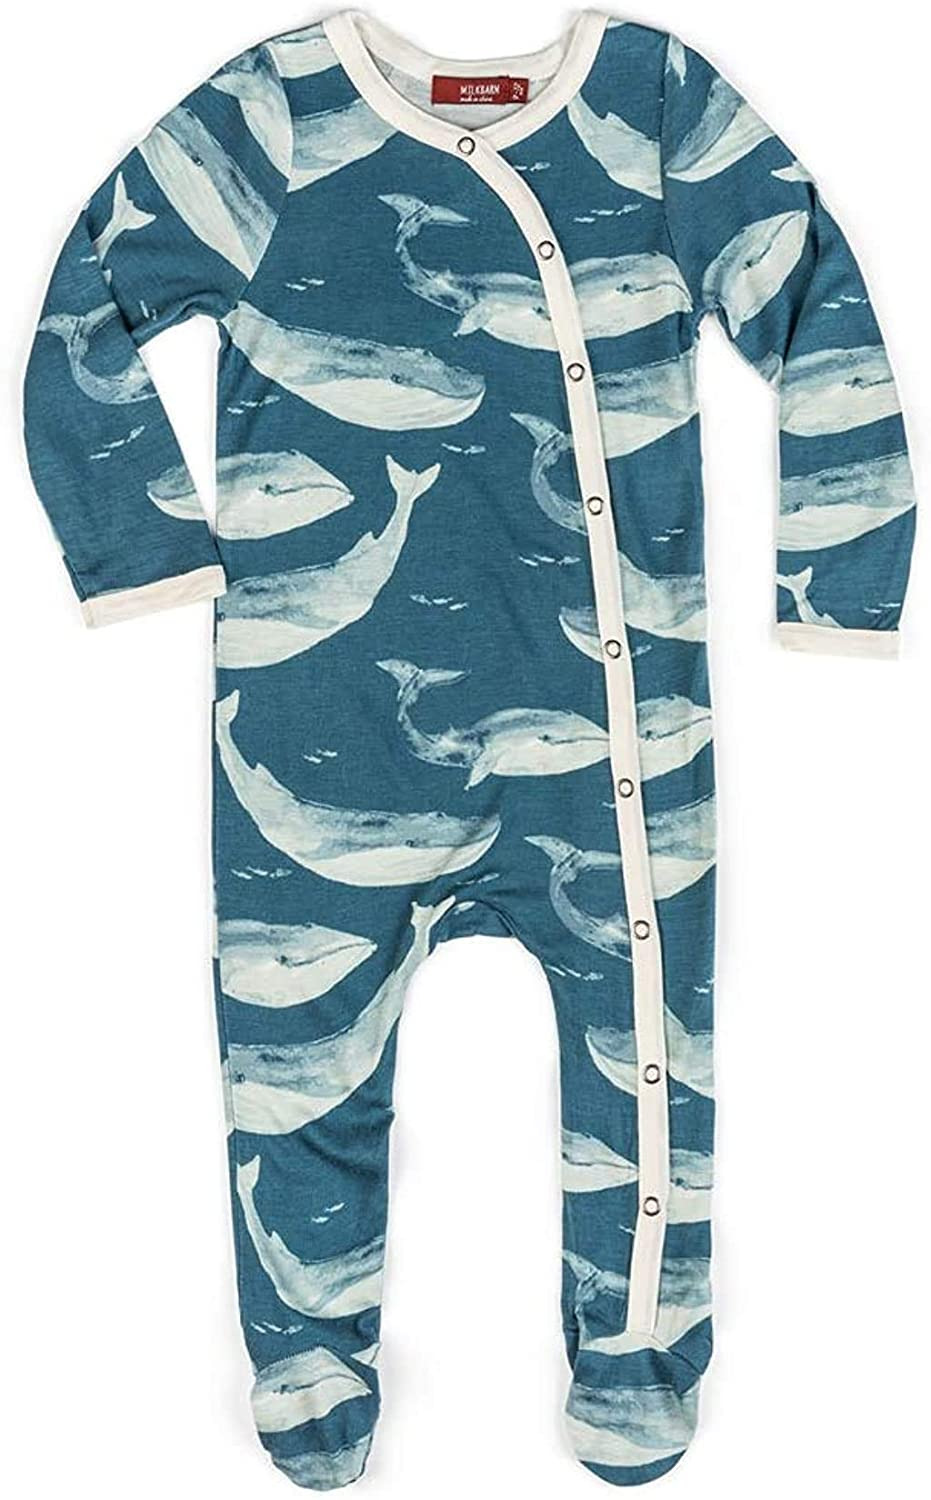 Blue Whale Bamboo Footed Romper 6-9 M Milkbarn Baby Baby